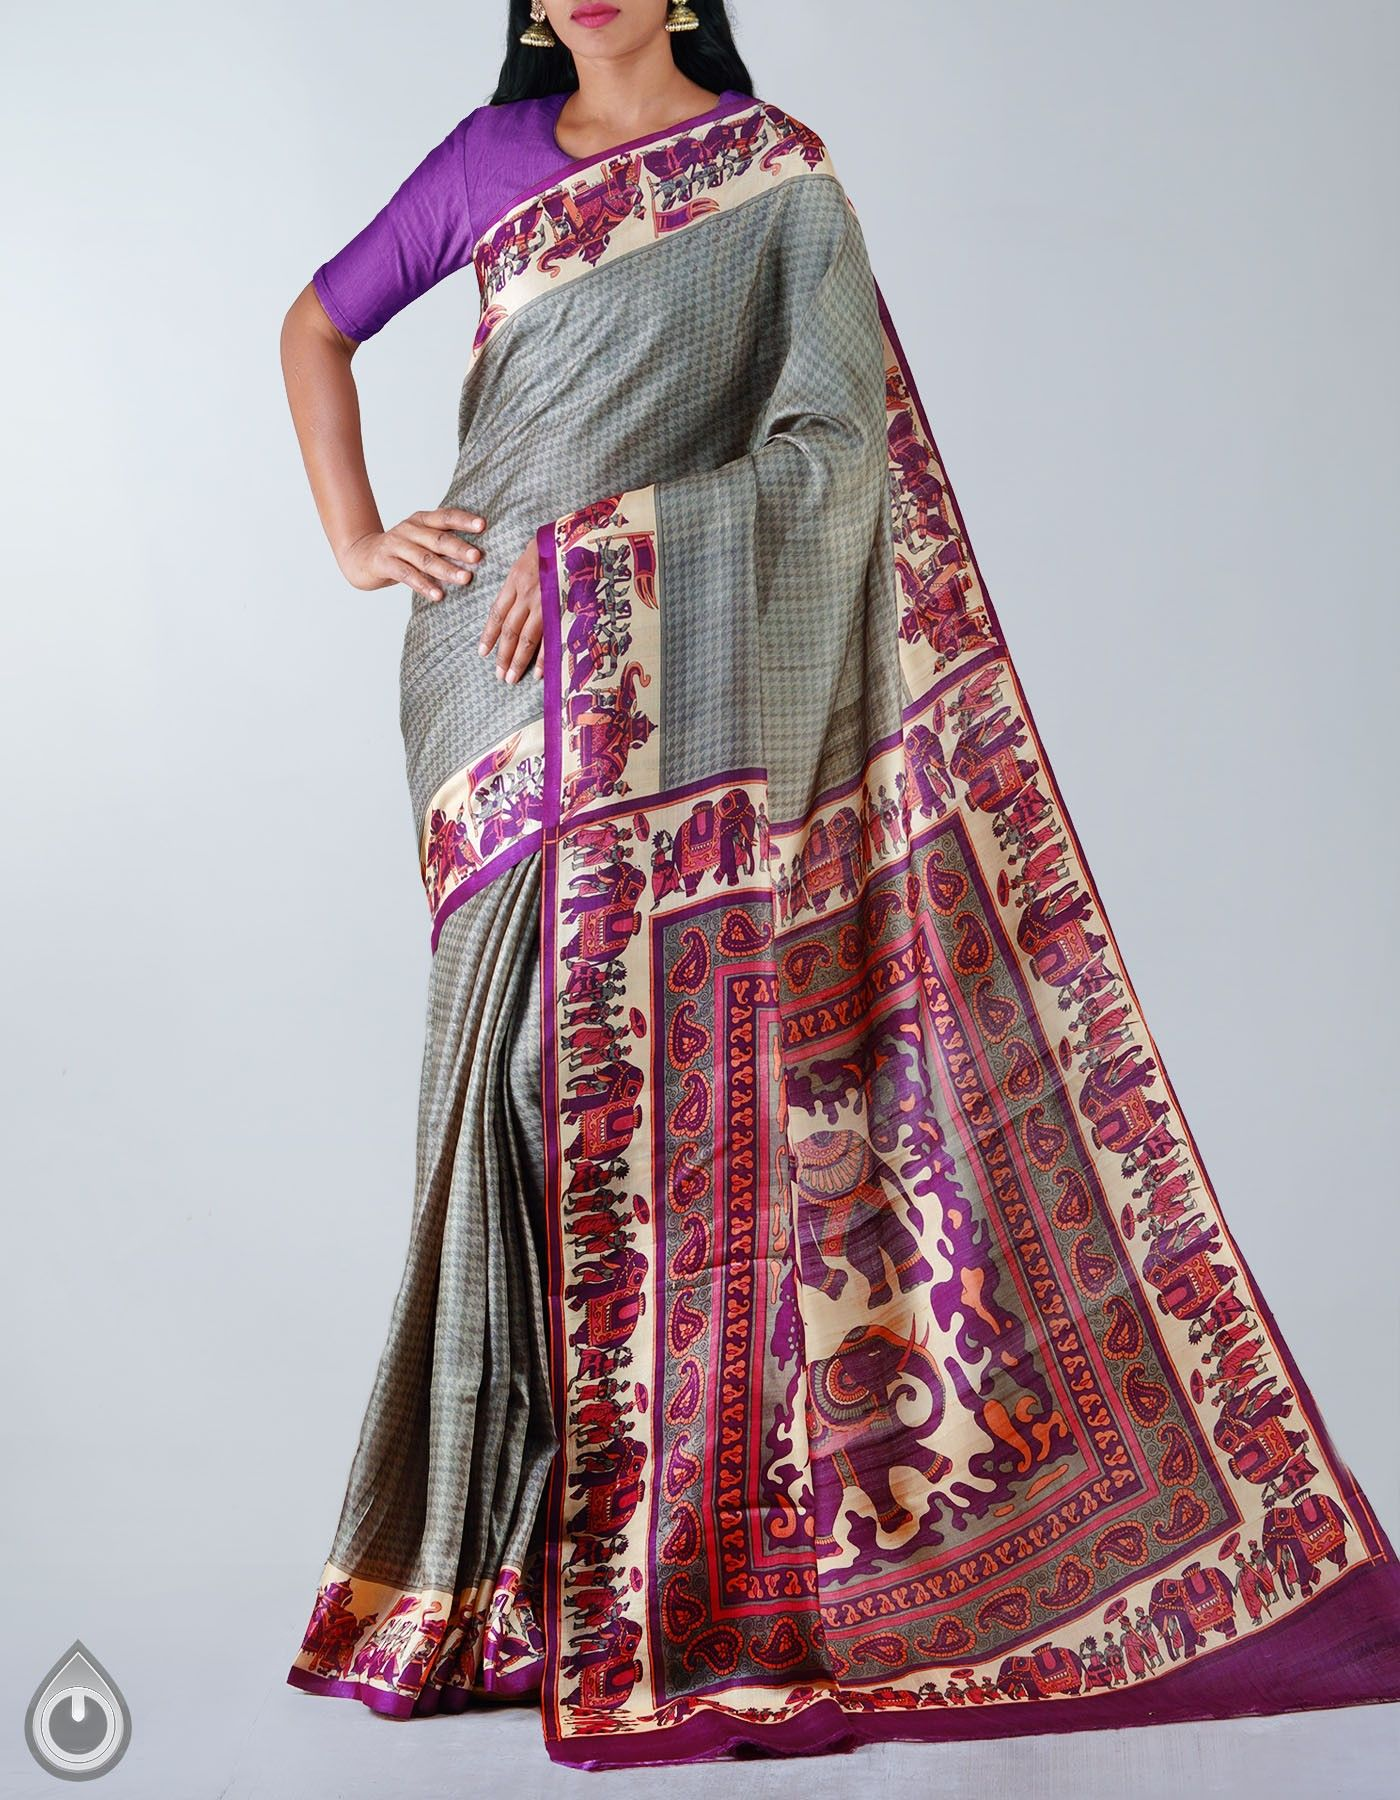 540be39bd6 Grey Pure Handloom Tussar Silk Saree,It has got elephant printed elegant  pallu and wedding inspired cream border,The saree is crafted by the Weavers  of ...